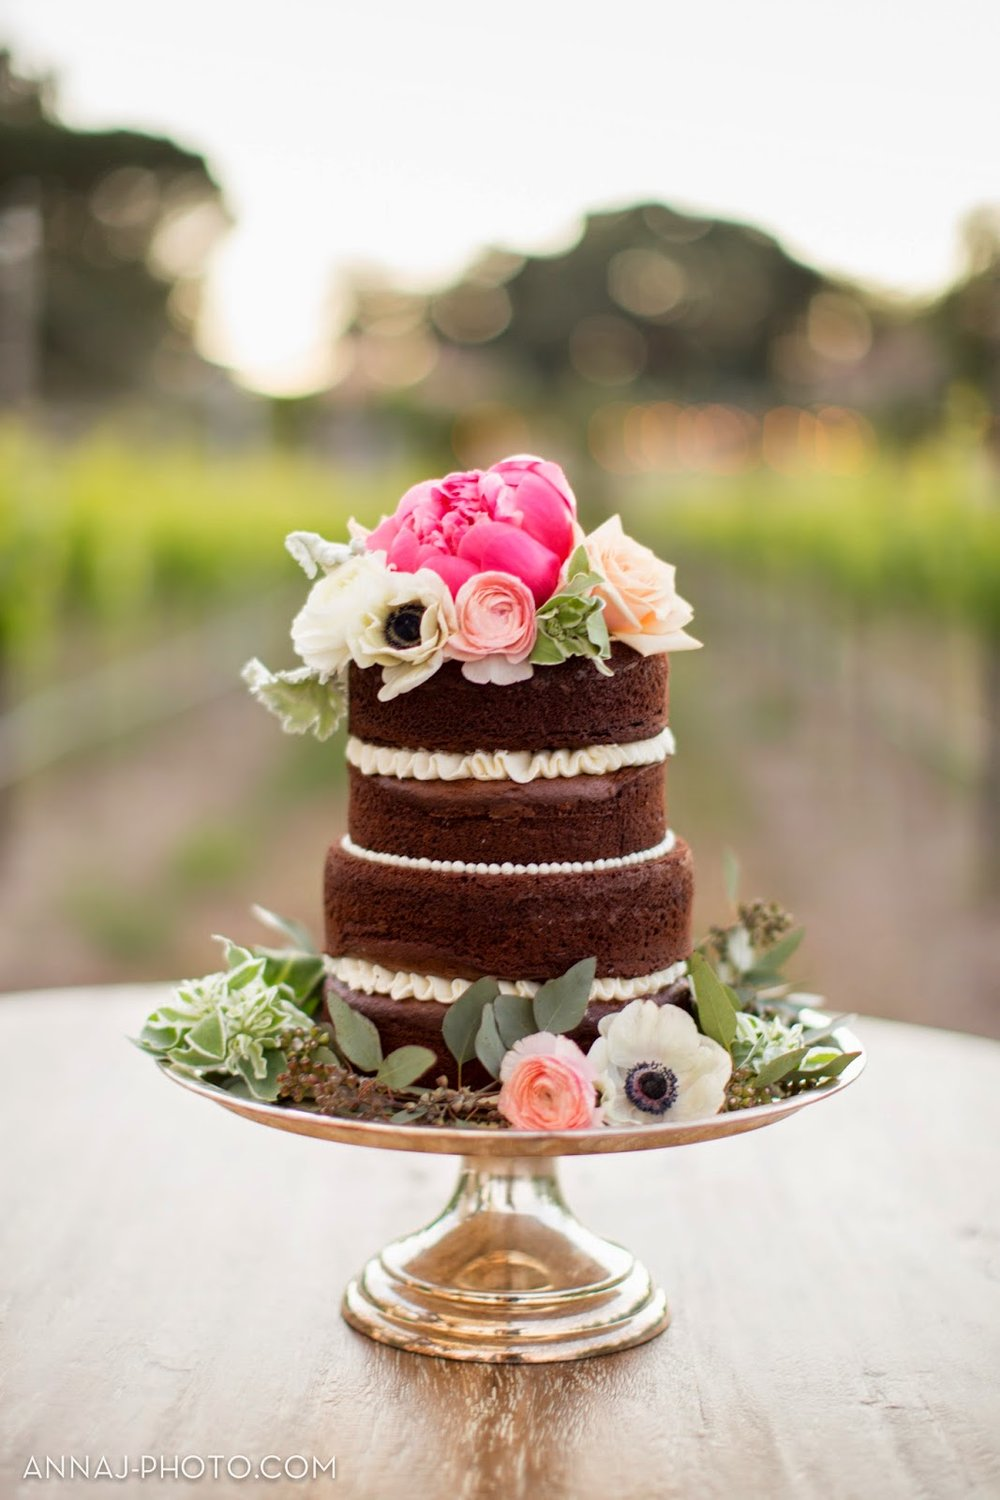 ce154-sogno2bdel2bfiore2bshoot2bwatermarked-cake-0006.jpg